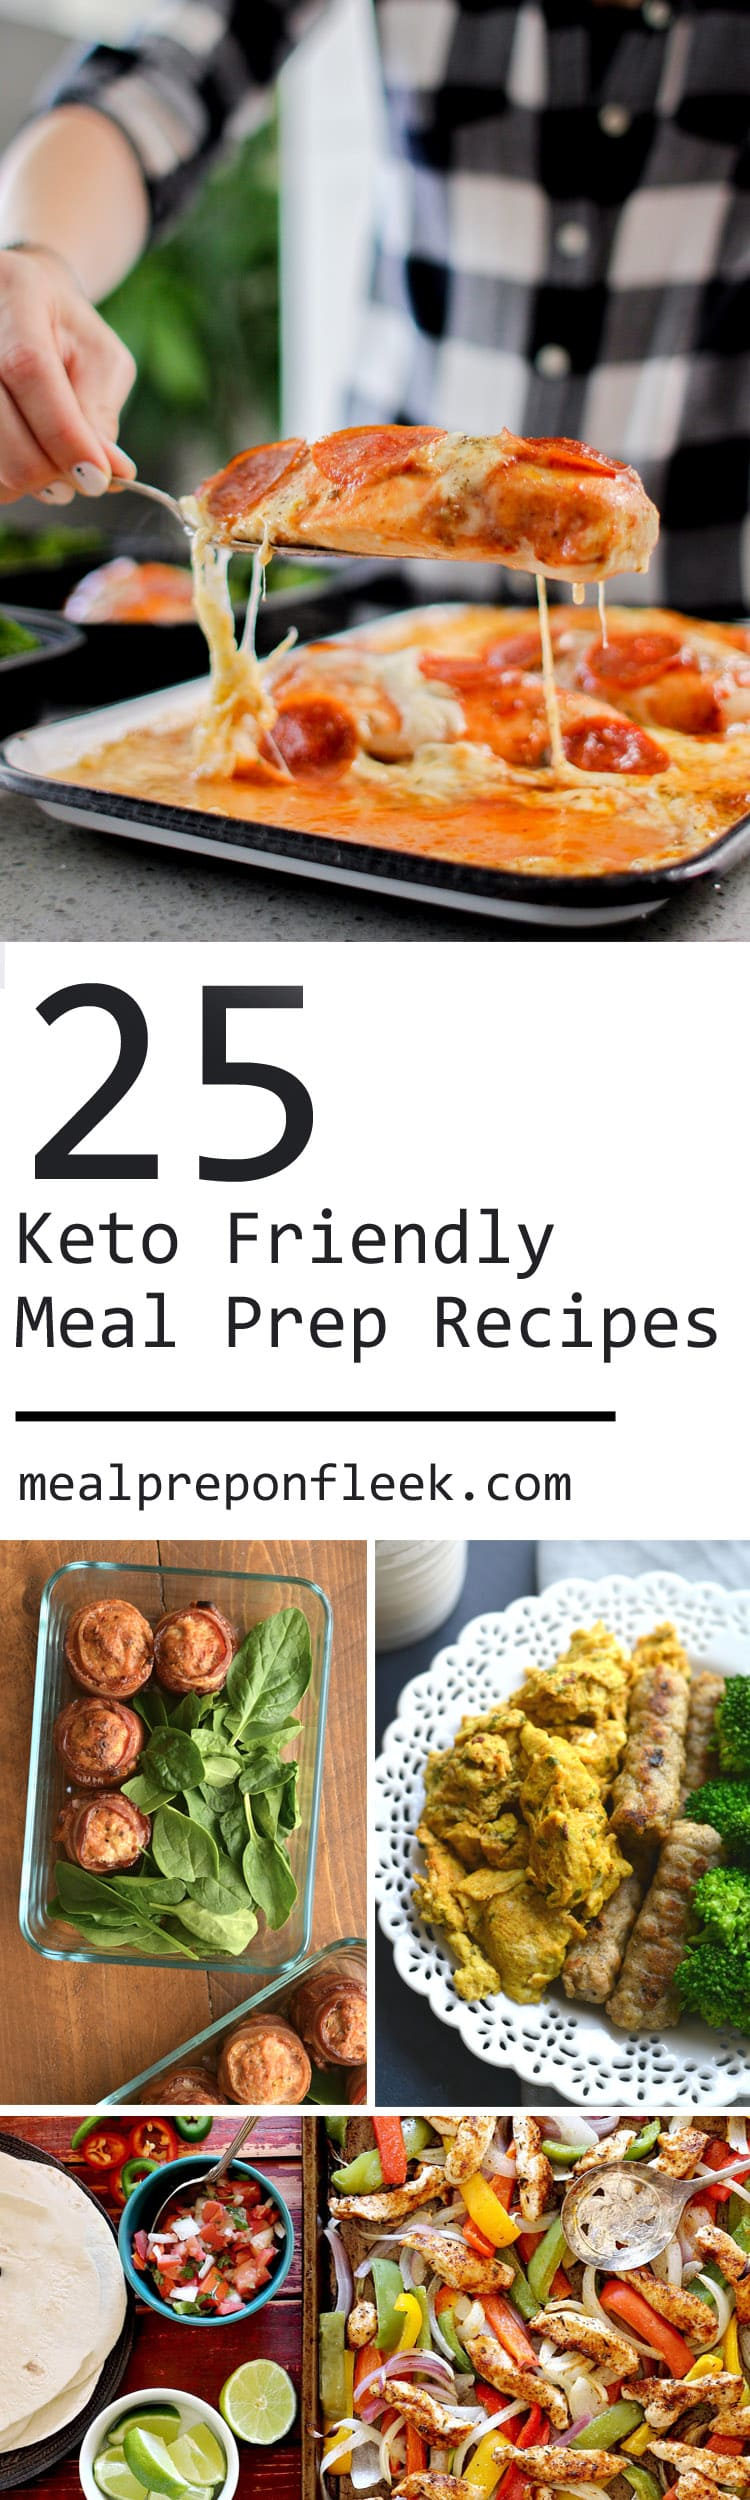 25 Keto Meal Prep Recipes : High in Healthy Fats + Low in Carbs